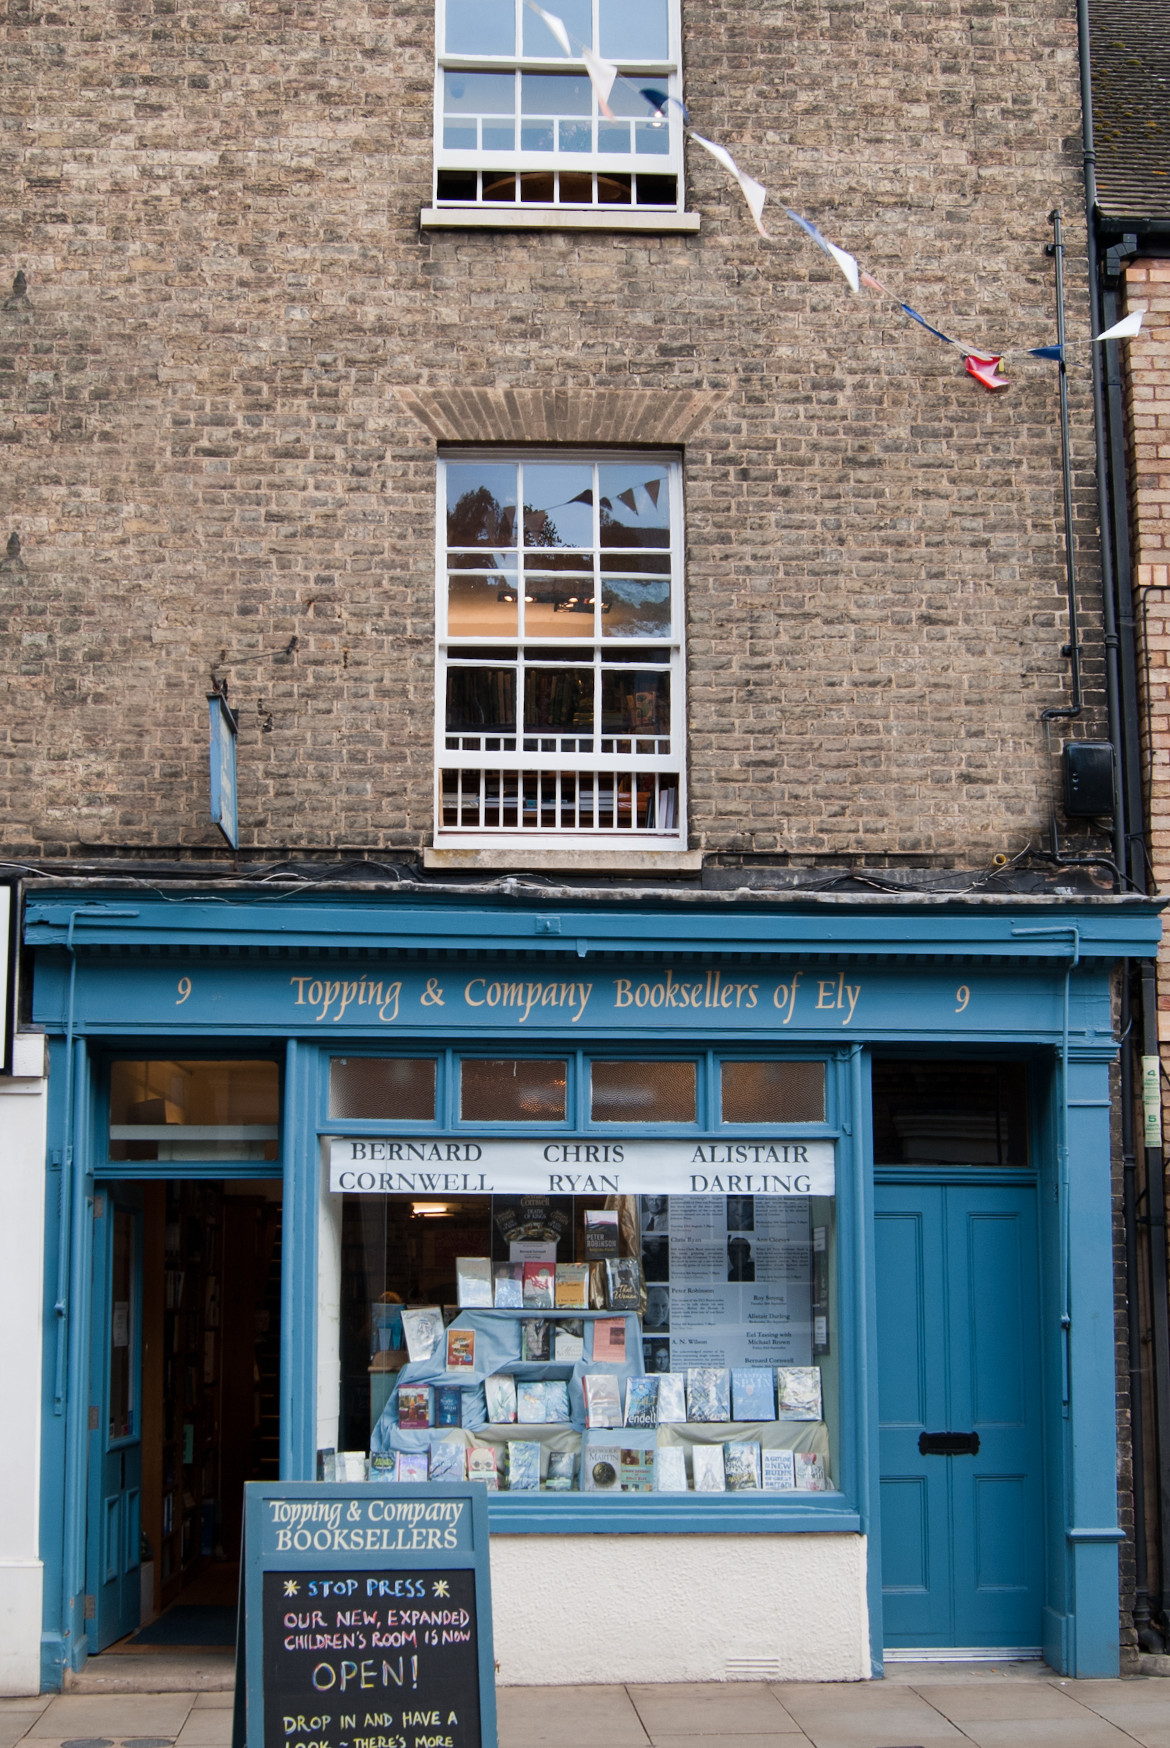 Outside the Ely Bookshop